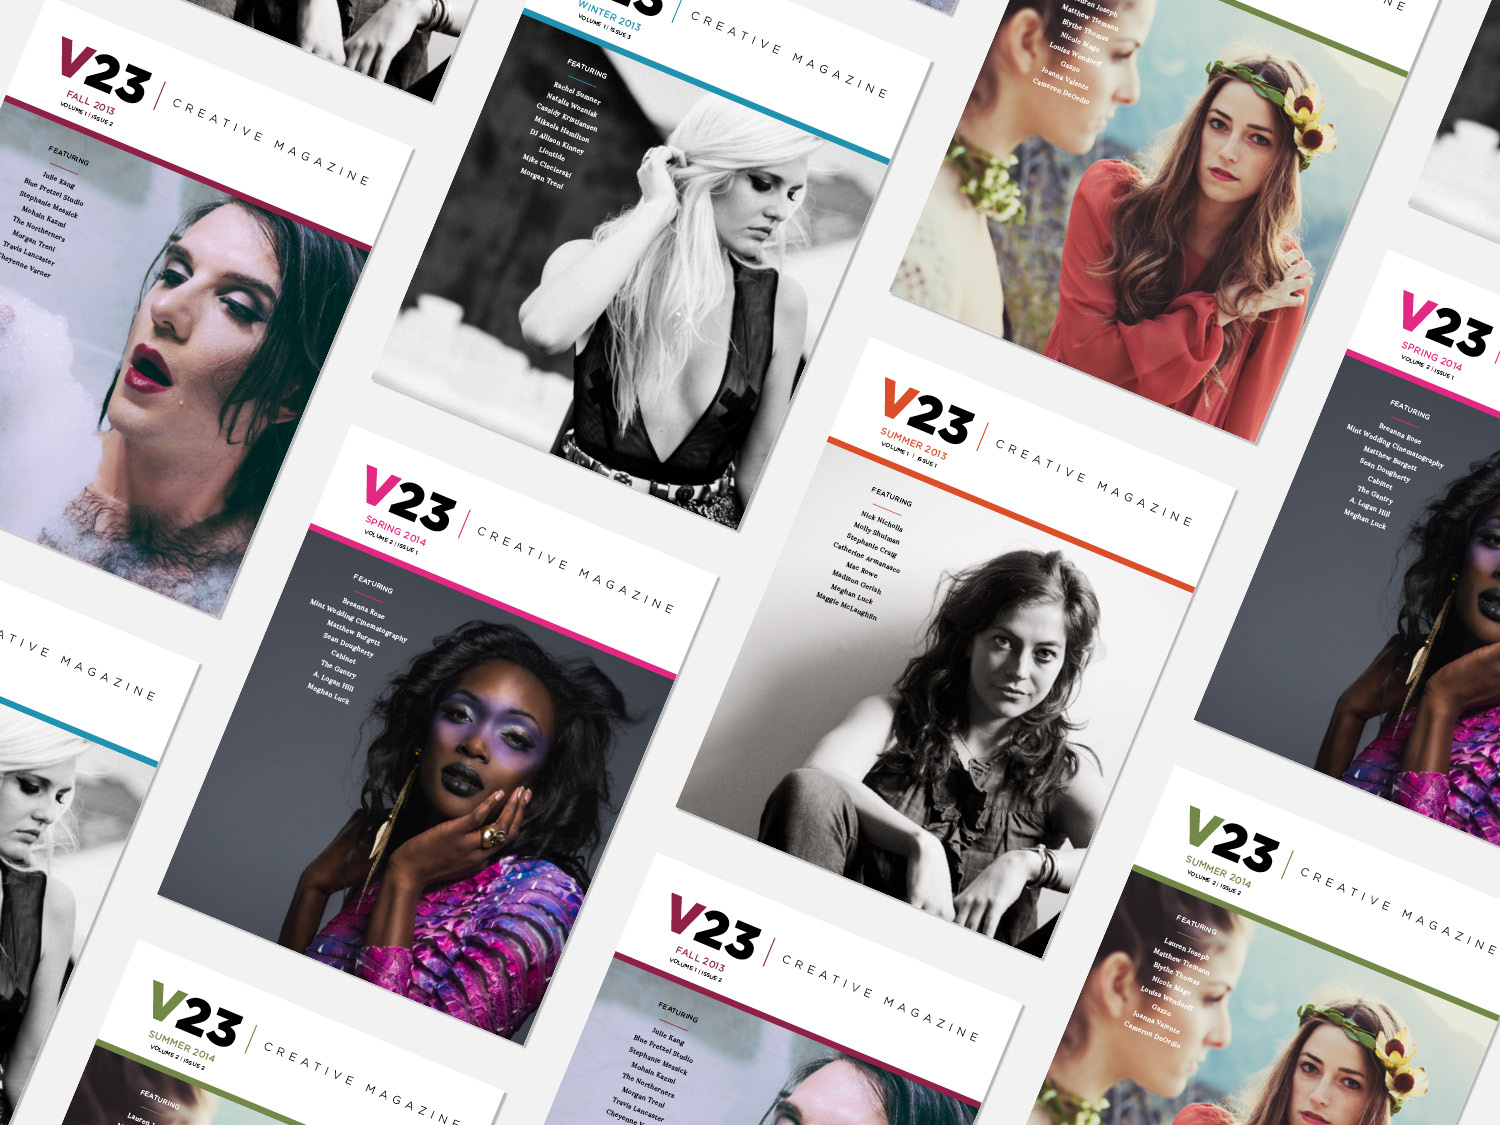 V23_Creative_Co_Magazine_Covers.jpg